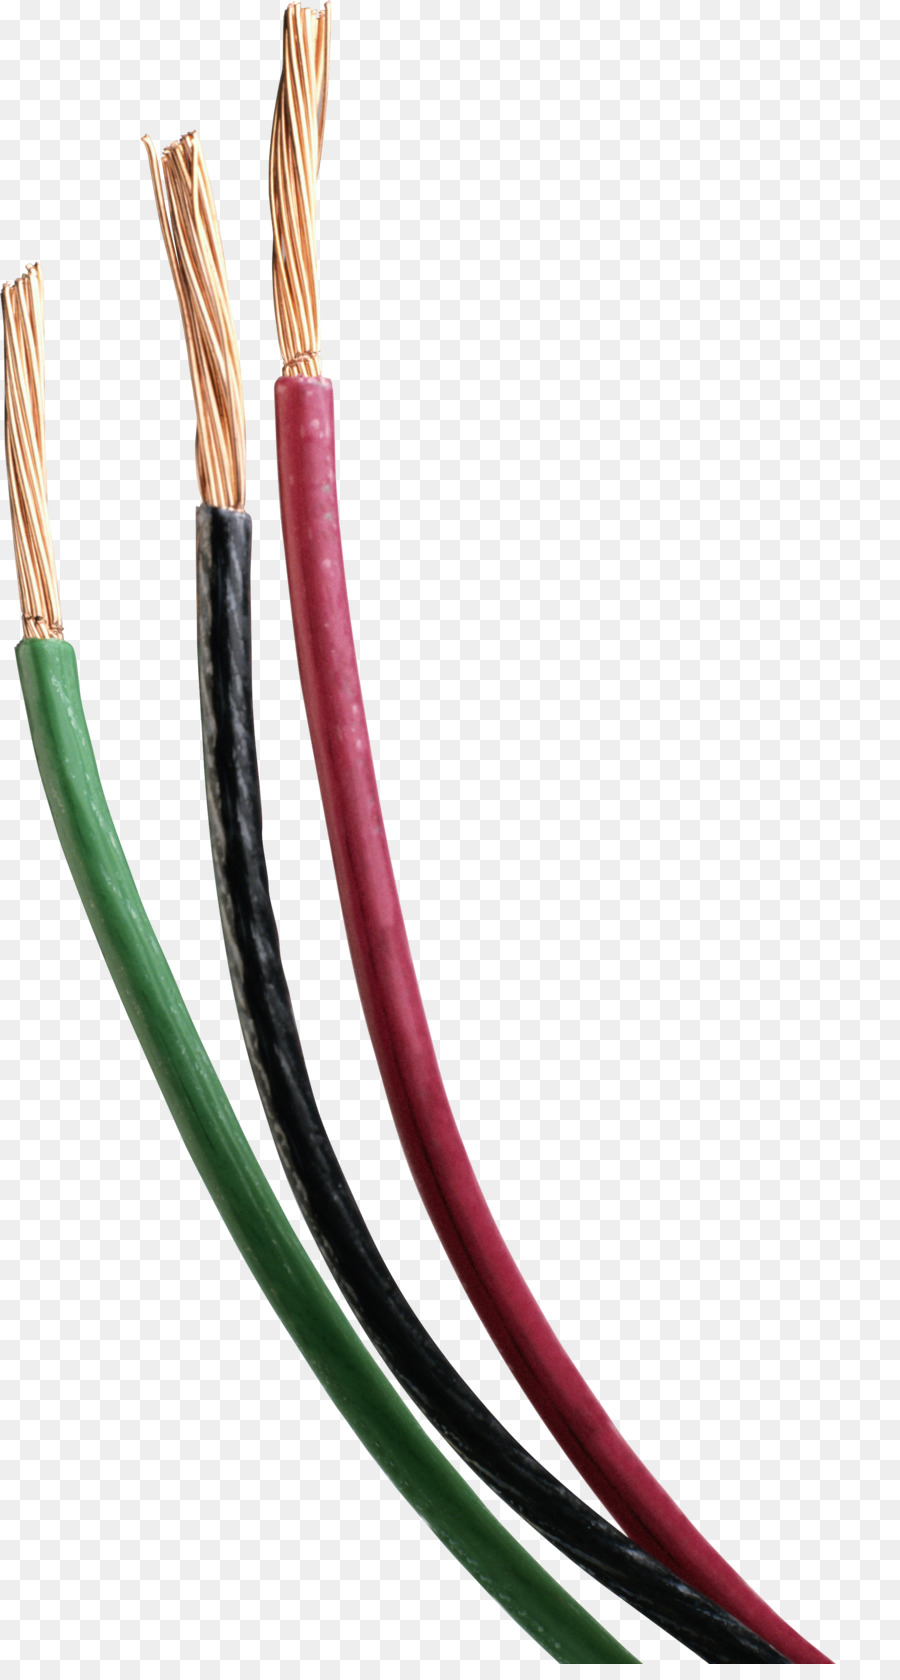 hight resolution of electrical wires cable electrical cable wire electronics accessory png